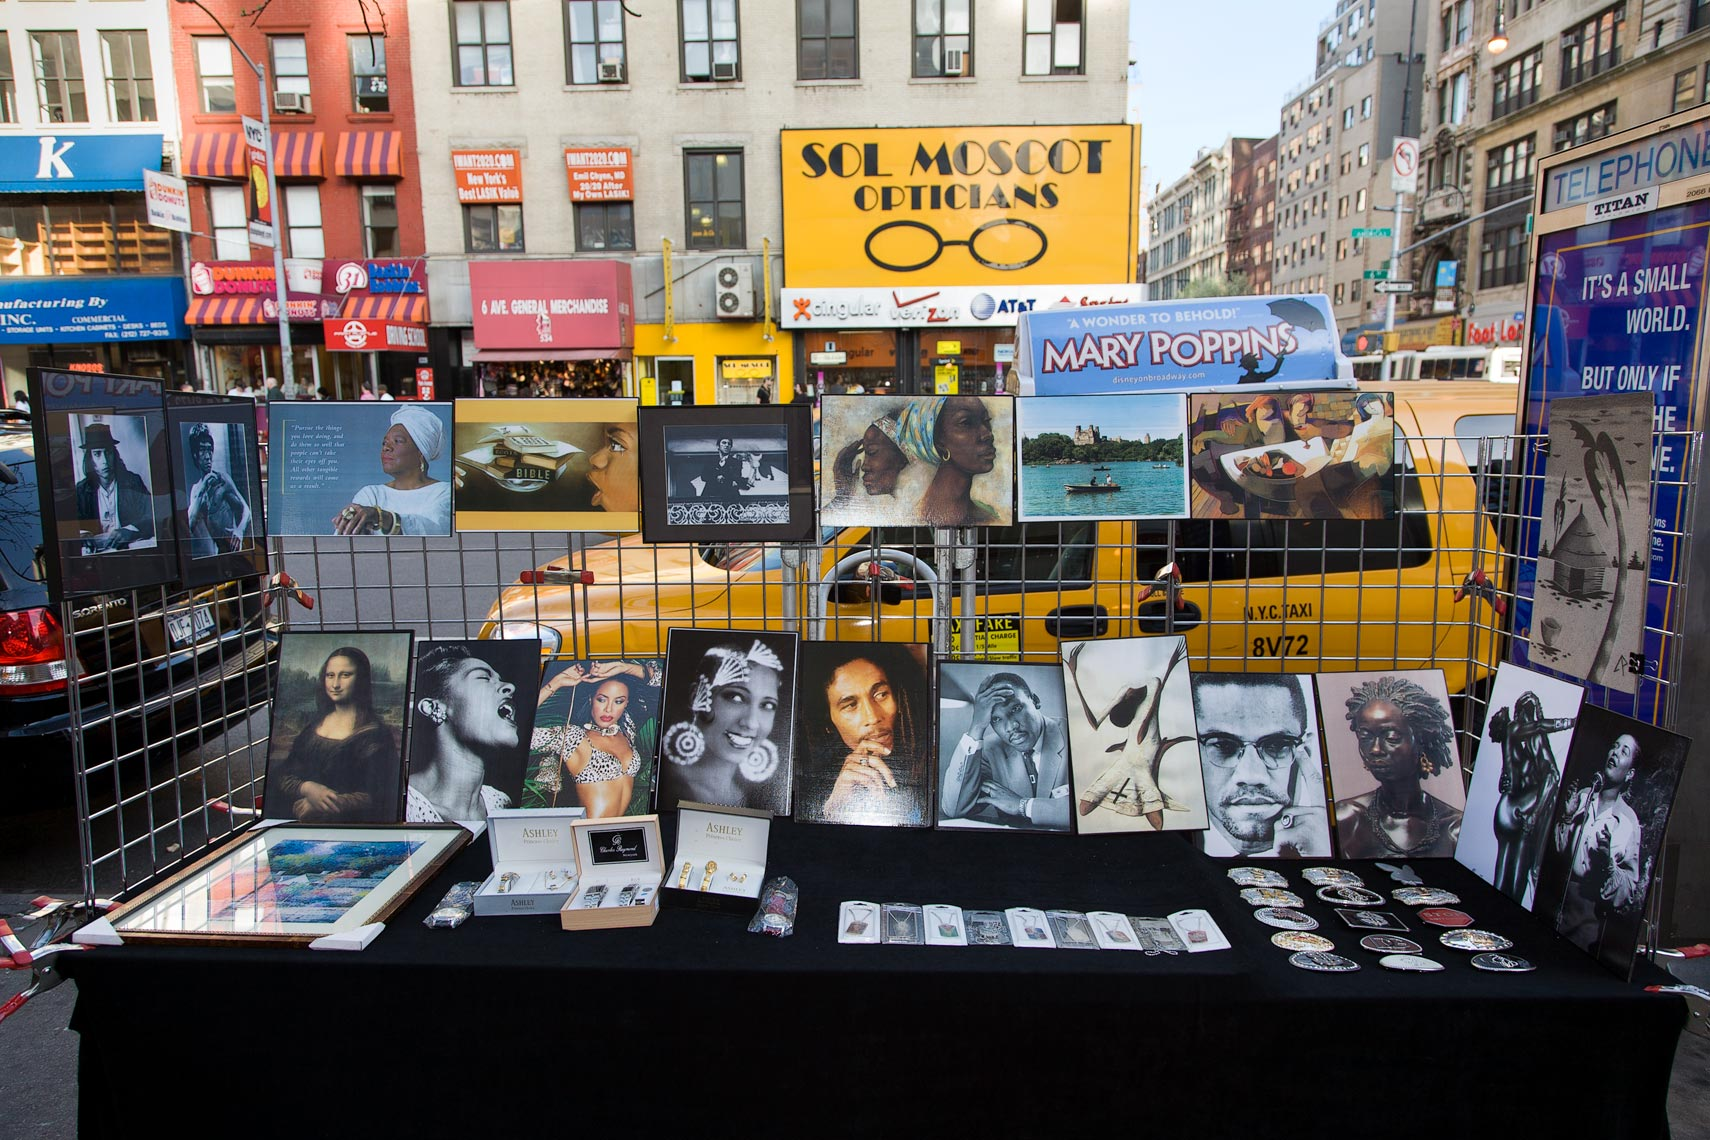 Street vendor display